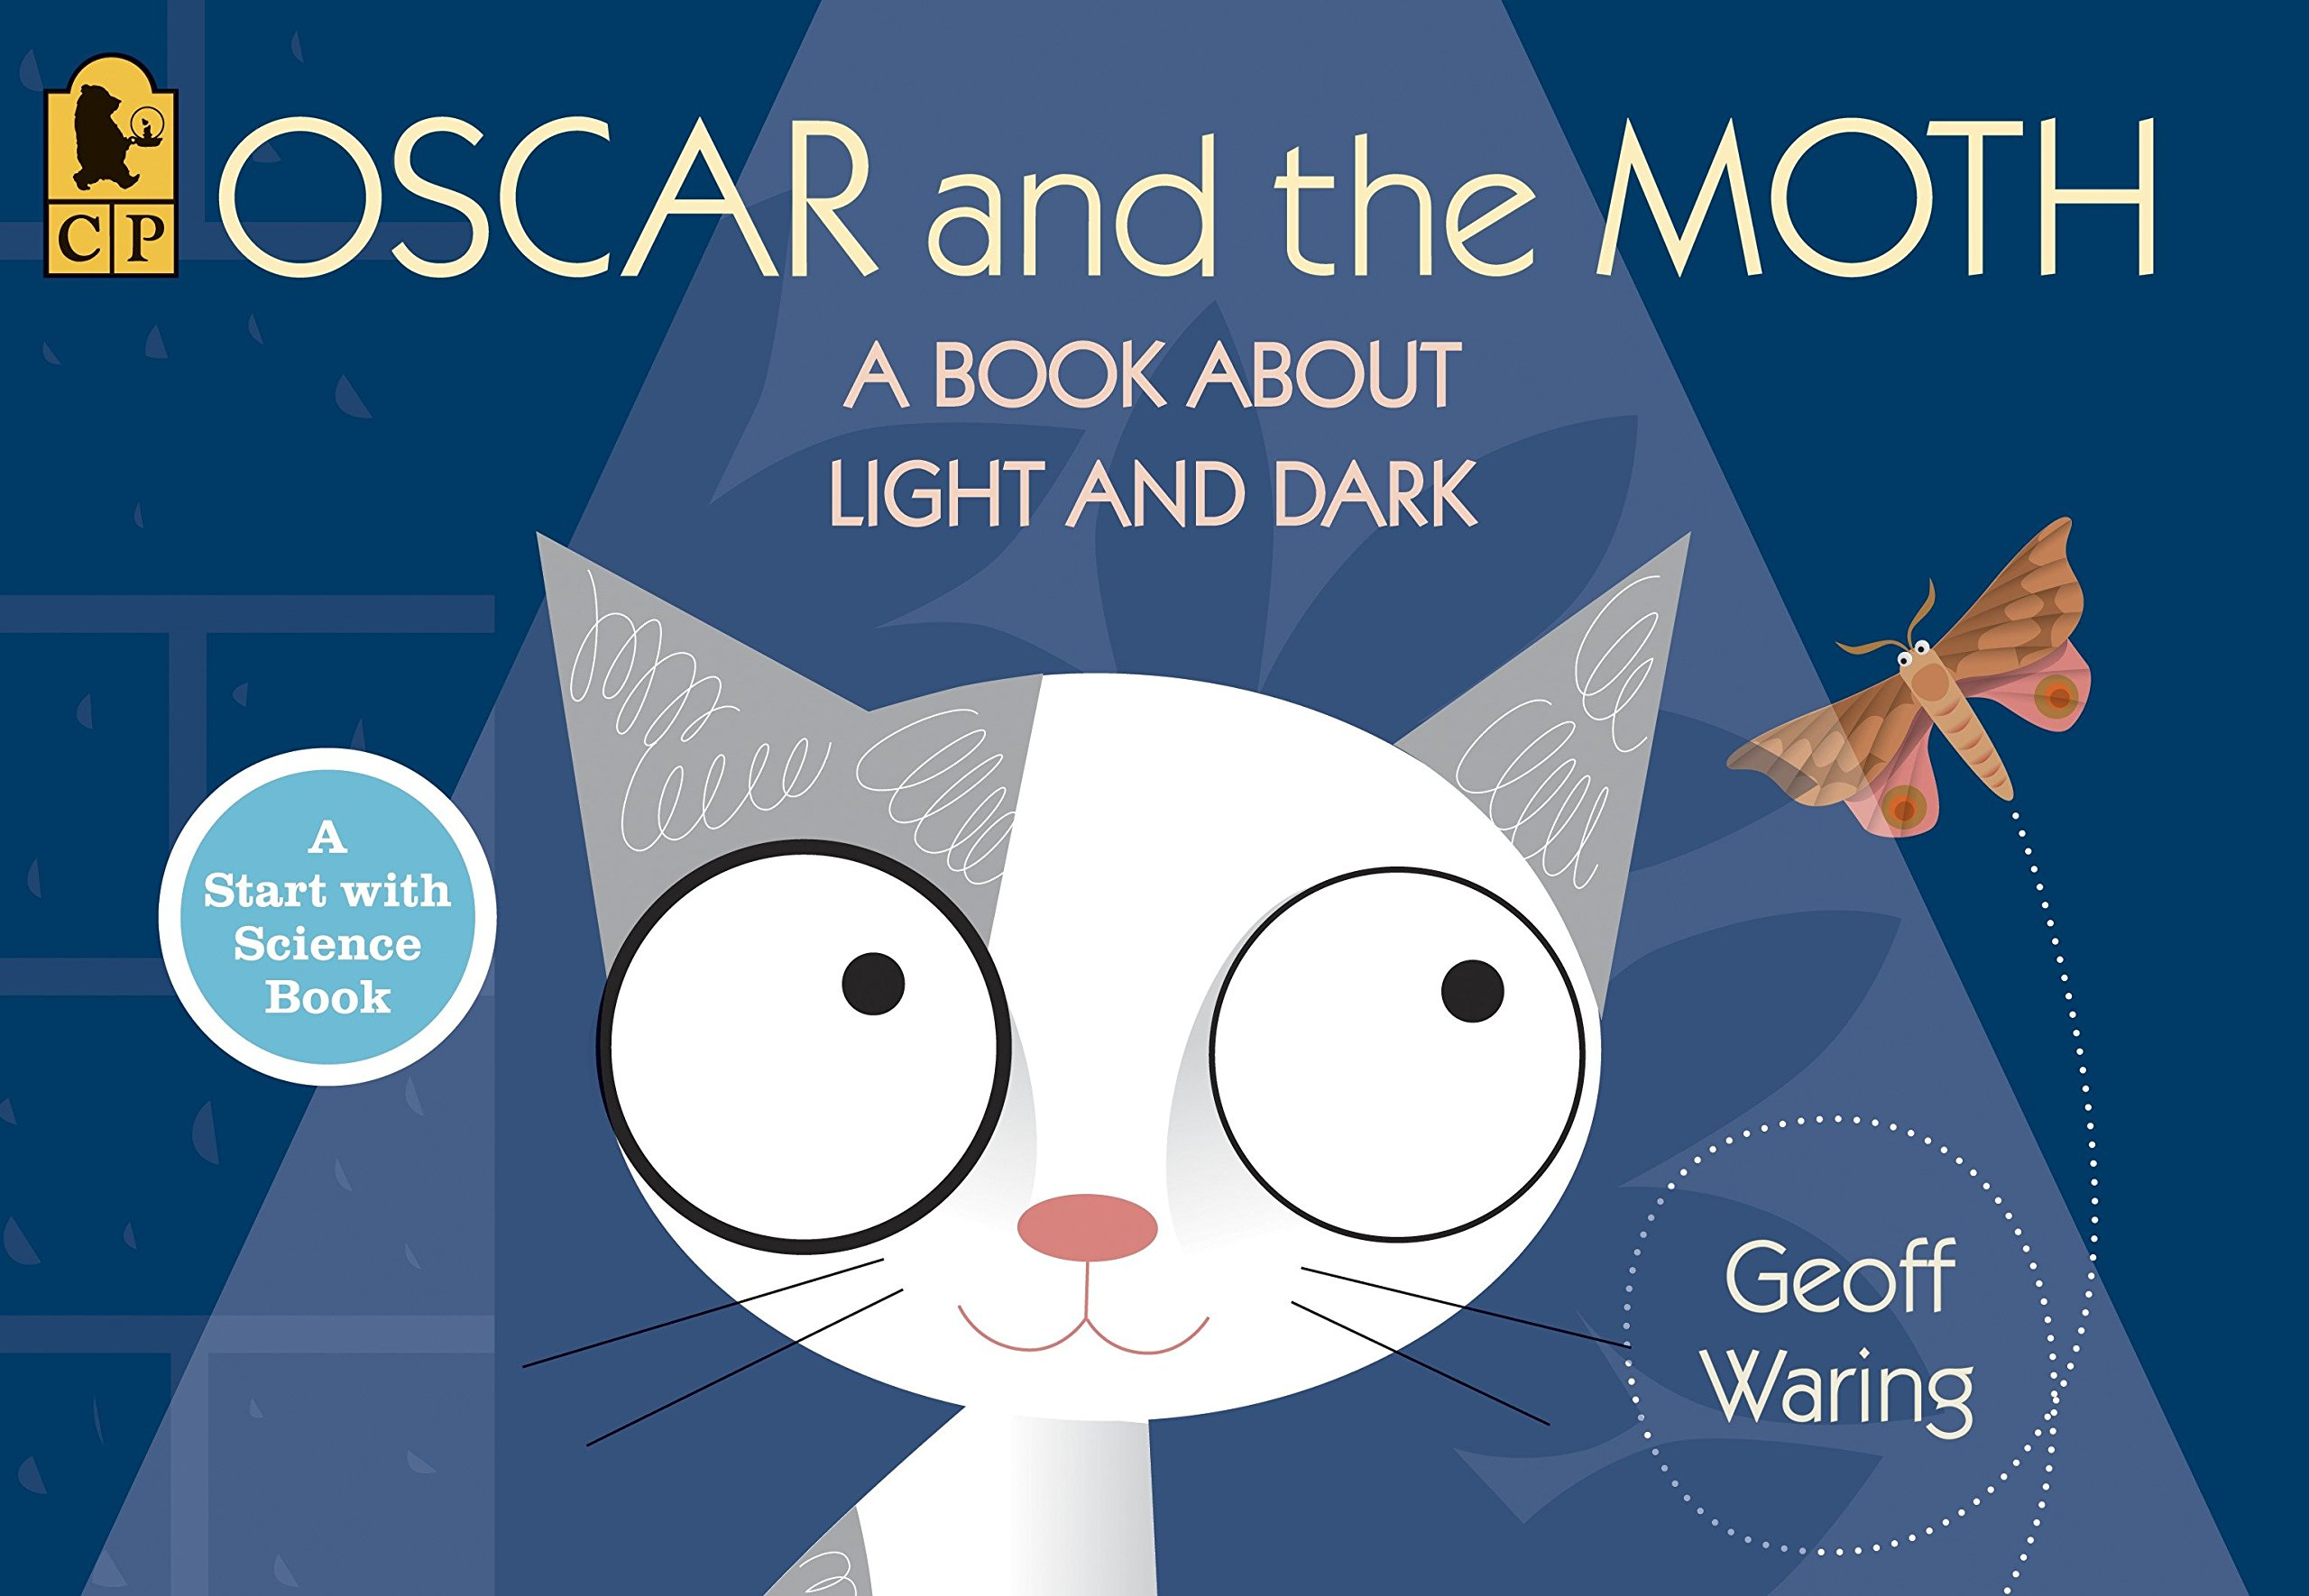 Oscar and the Moth by Geof Waring